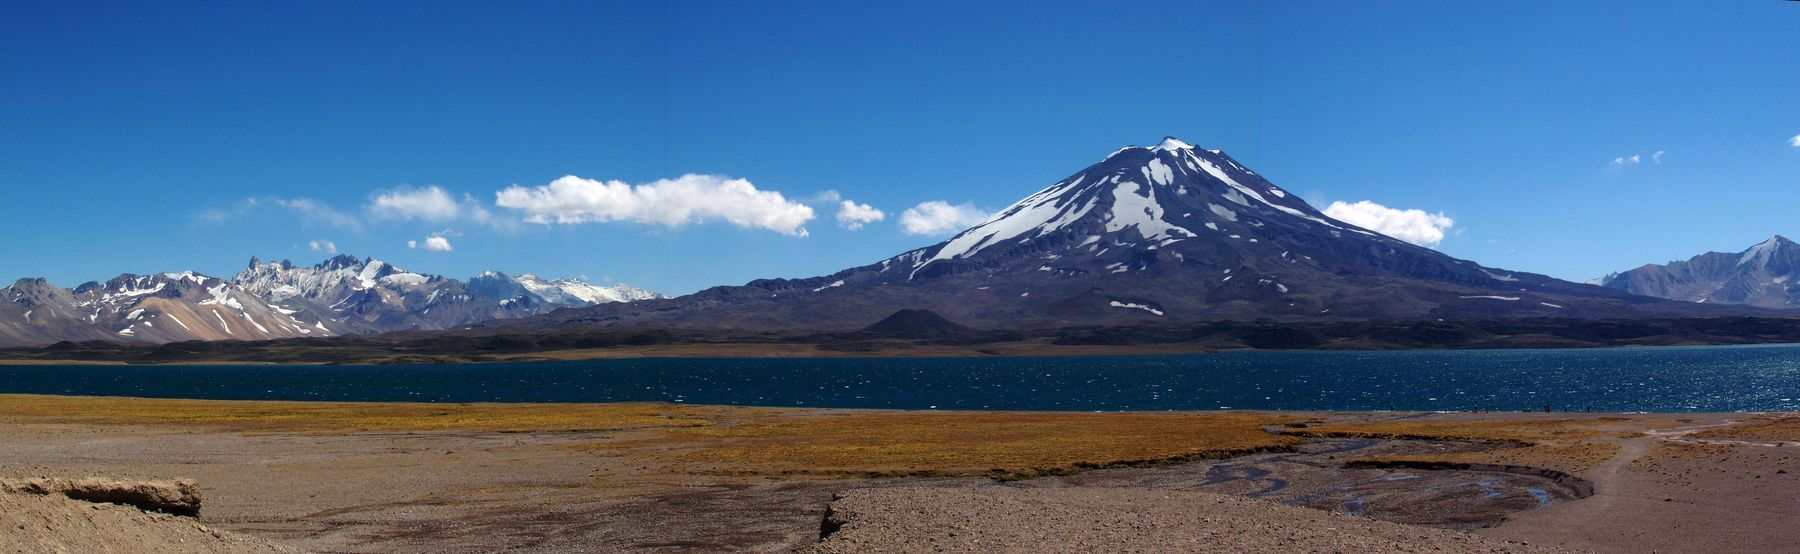 Beauty In Nature Blue Day Laguna Del Diamante Laguna Verde Landscape Mountain Mountain Peak Mountain Range Nature No People Outdoors Scenics Sky Snow Tourism Travel Travel Destinations Vacations Water